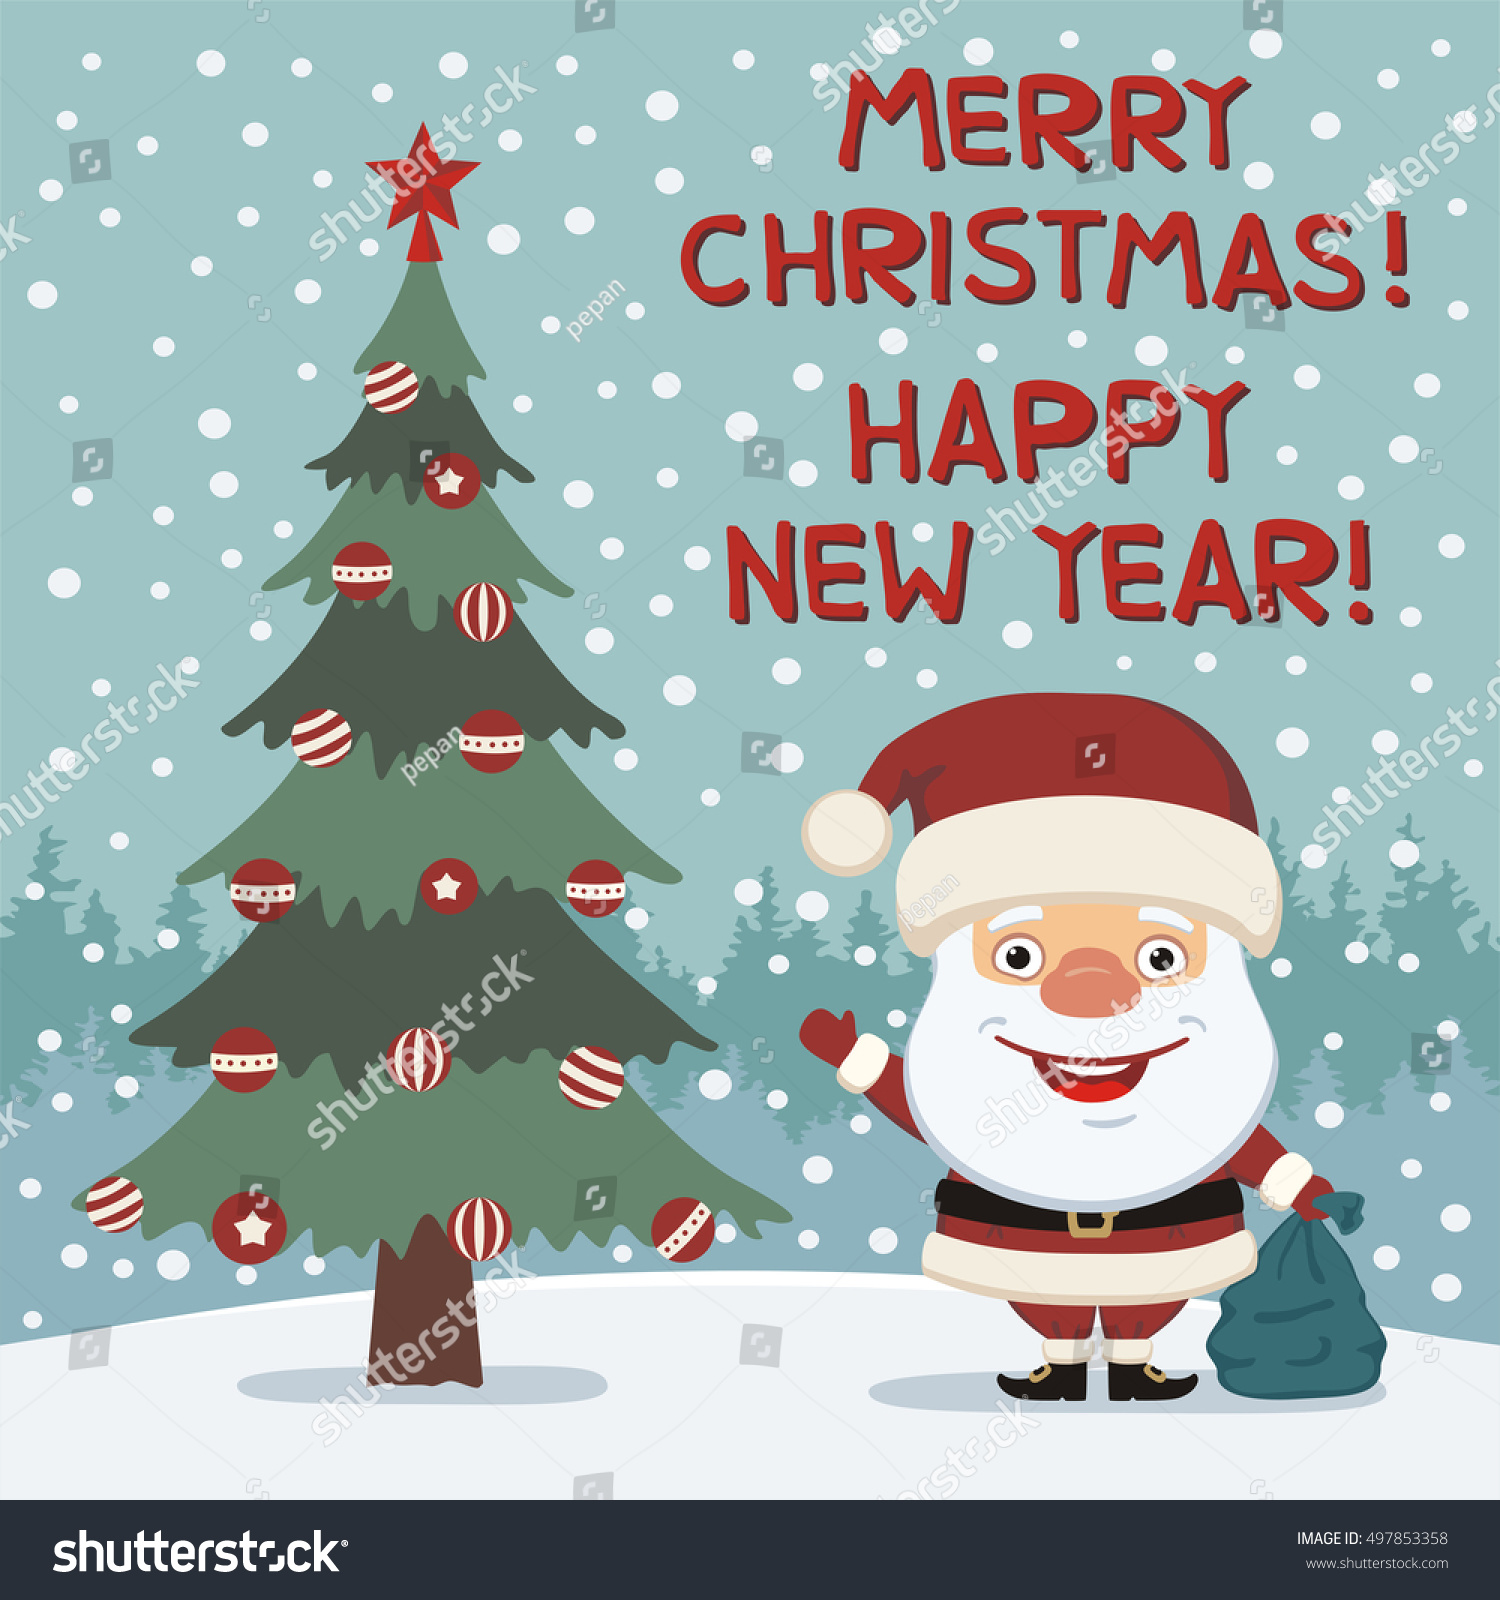 Merry christmas and happy new year gifts